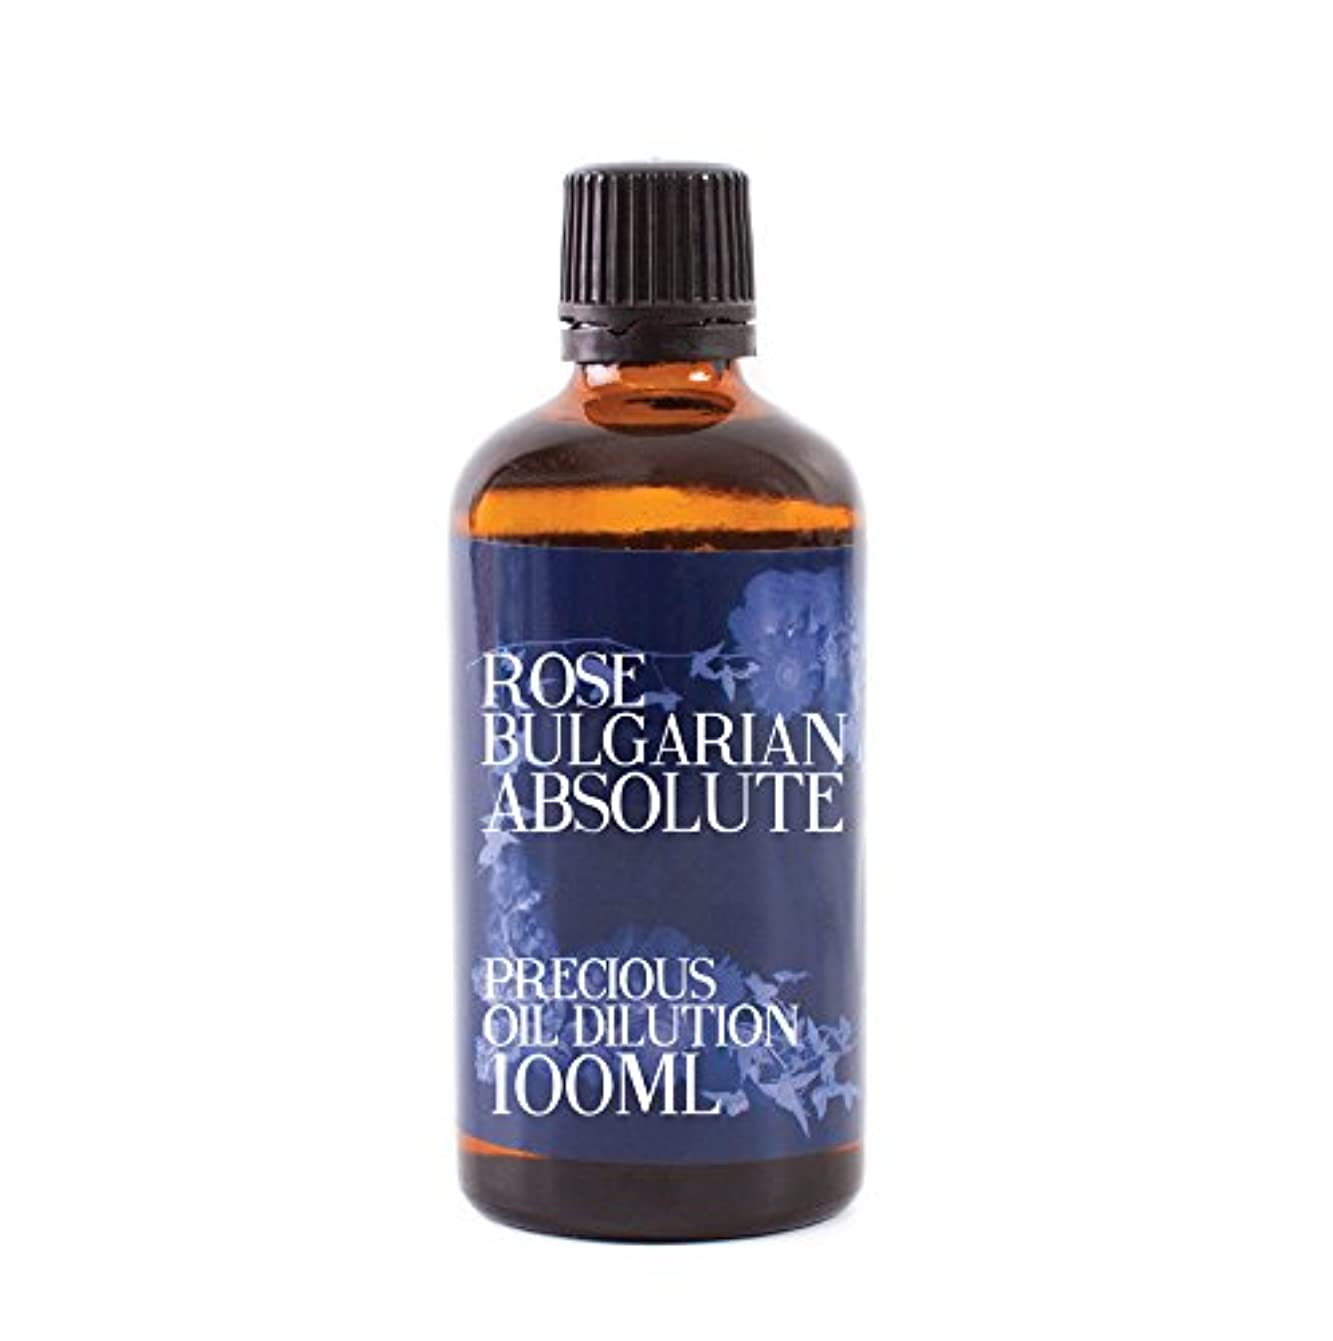 補償信者血まみれRose Bulgarian Absolute Oil Dilution - 100ml - 3% Jojoba Blend